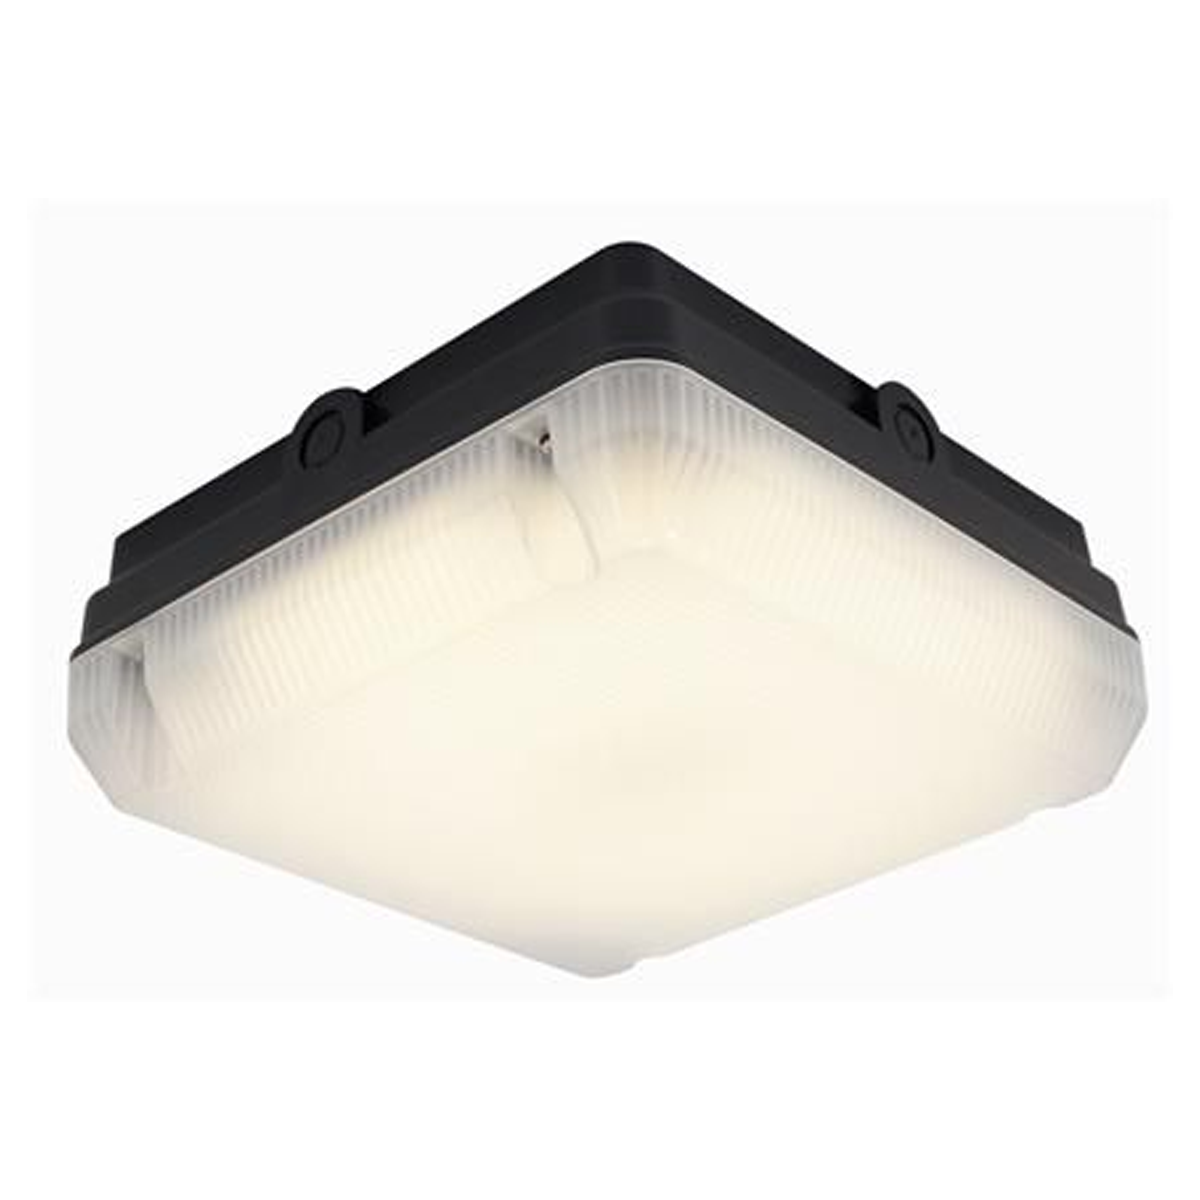 Ansell astro LED Bulkhead Light with Microwave Sensor